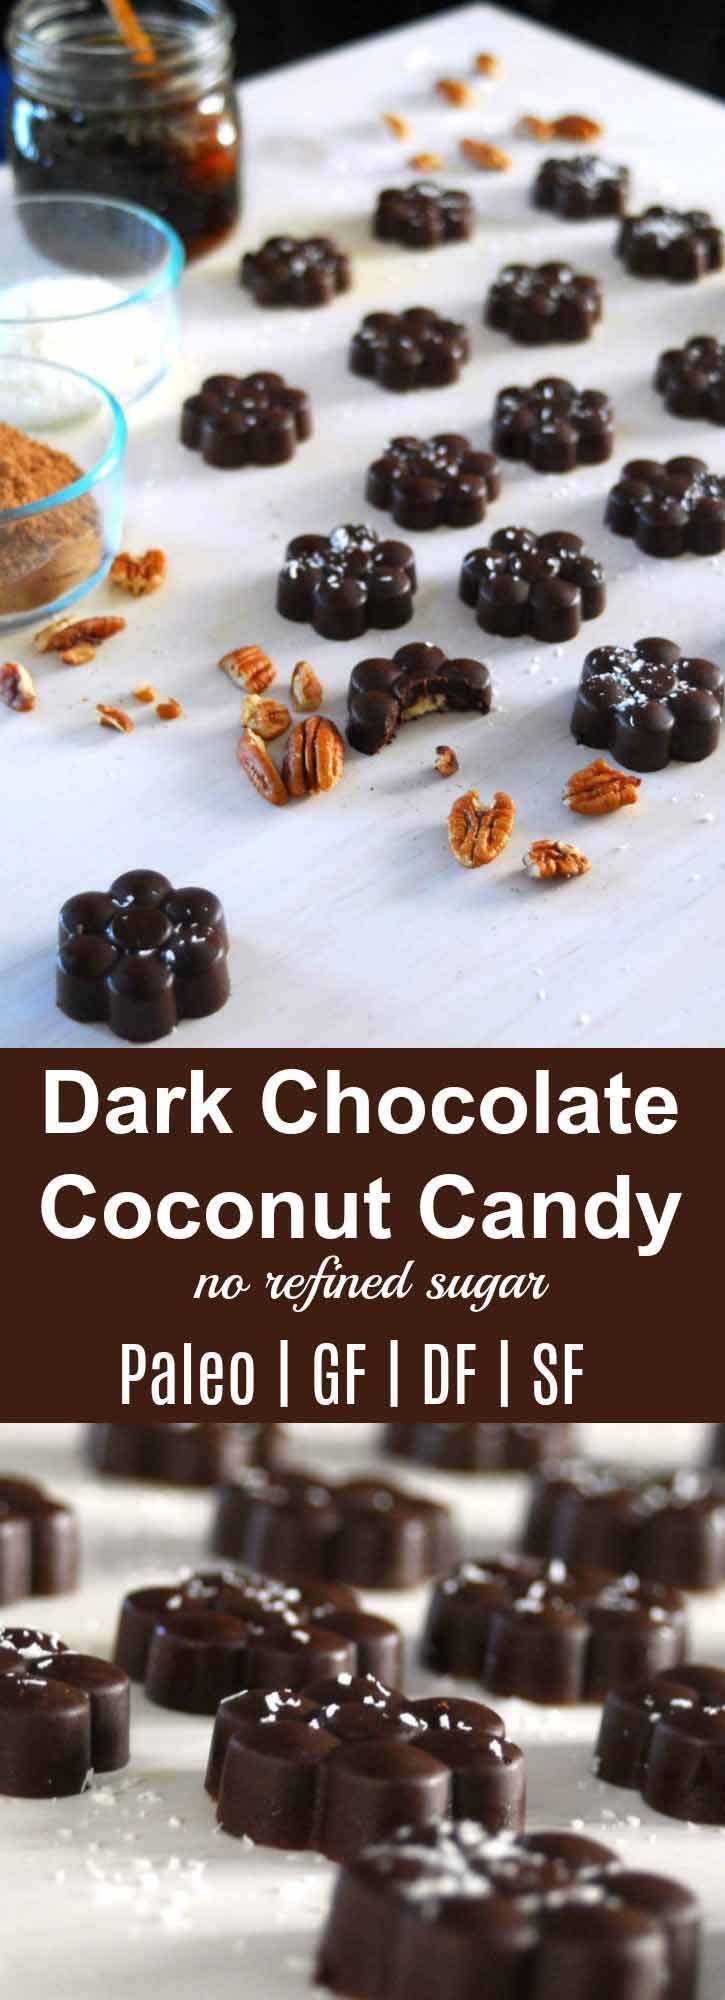 """The perfect guilt-free dark chocolate treat for Christmas! Dark Chocolate Coconut Candy {Paleo} 